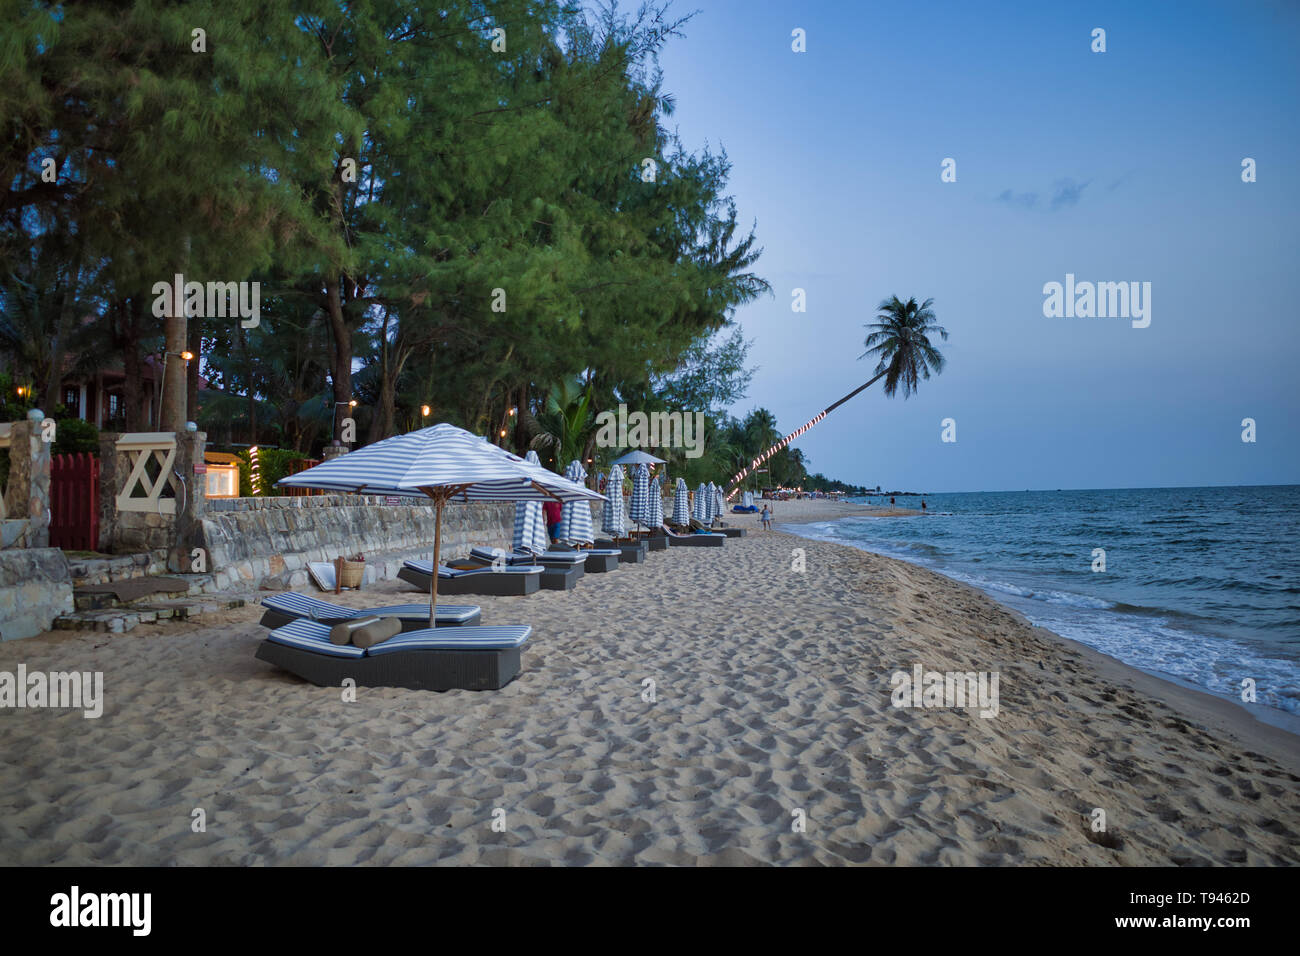 Sunbeds with parasol on a nice Long beach in the evening, surrounded by palm trees in Phu Quoc, Vietnam - Stock Image